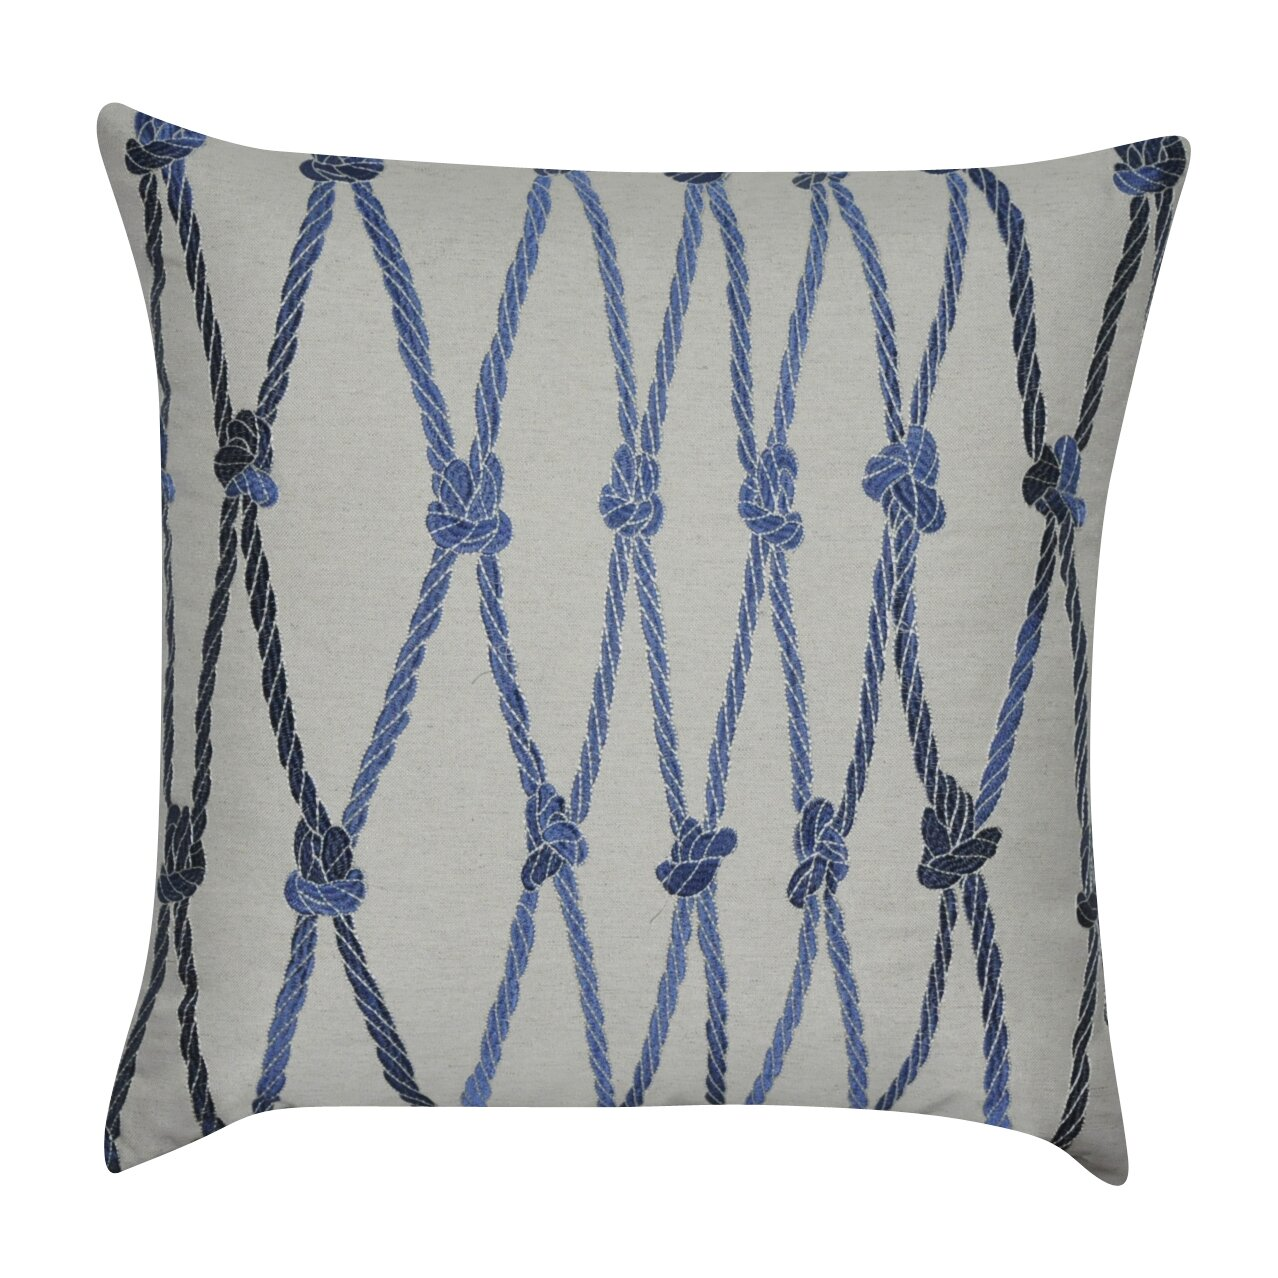 Loom And Mill Ropes Decorative Cotton Throw Pillow Wayfair